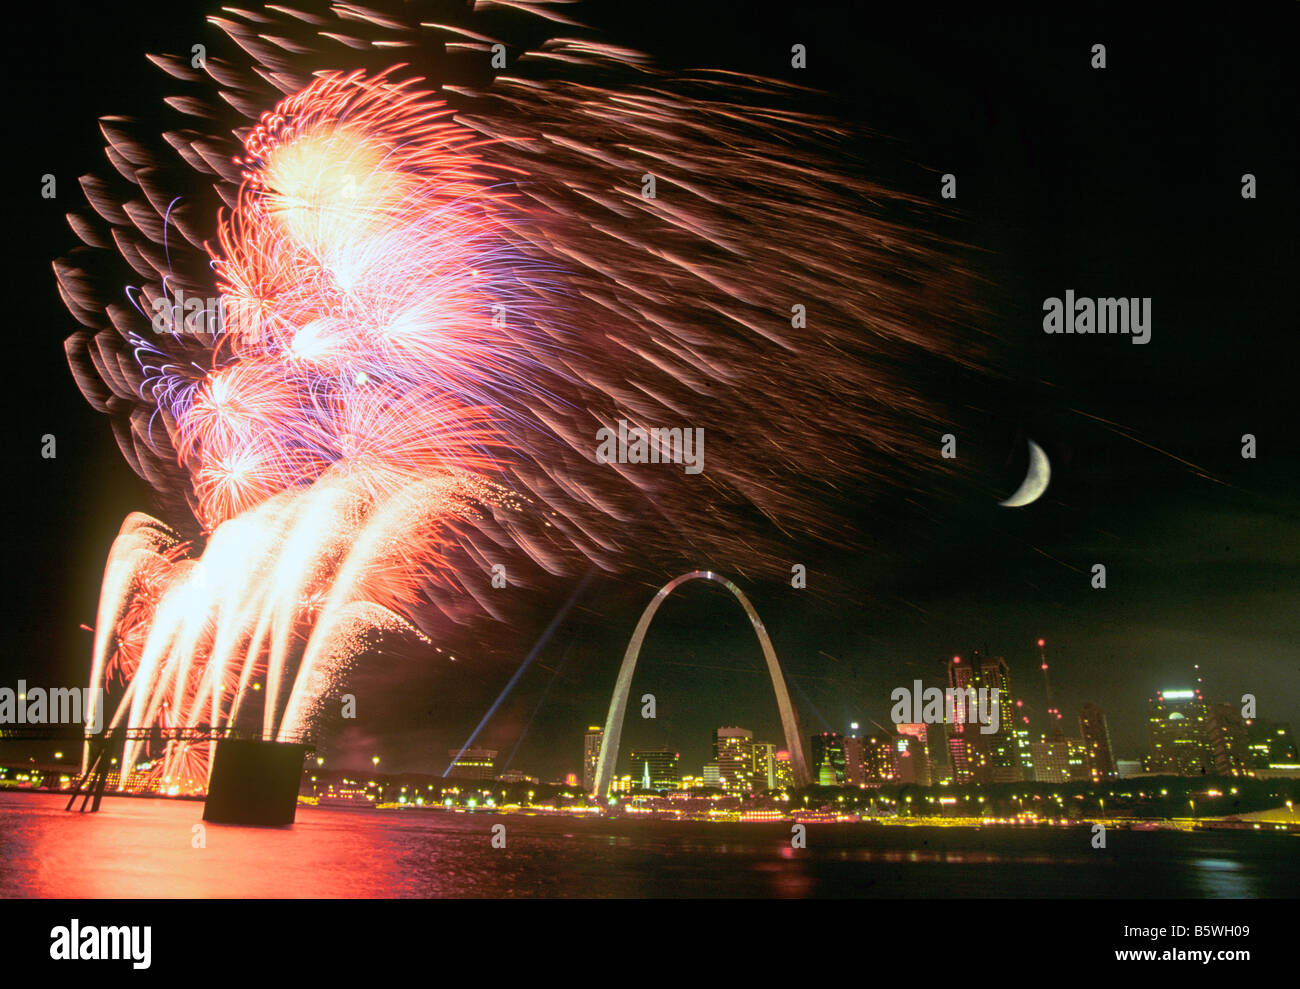 Largest City Missouri Stock Photos & Largest City Missouri Stock ...